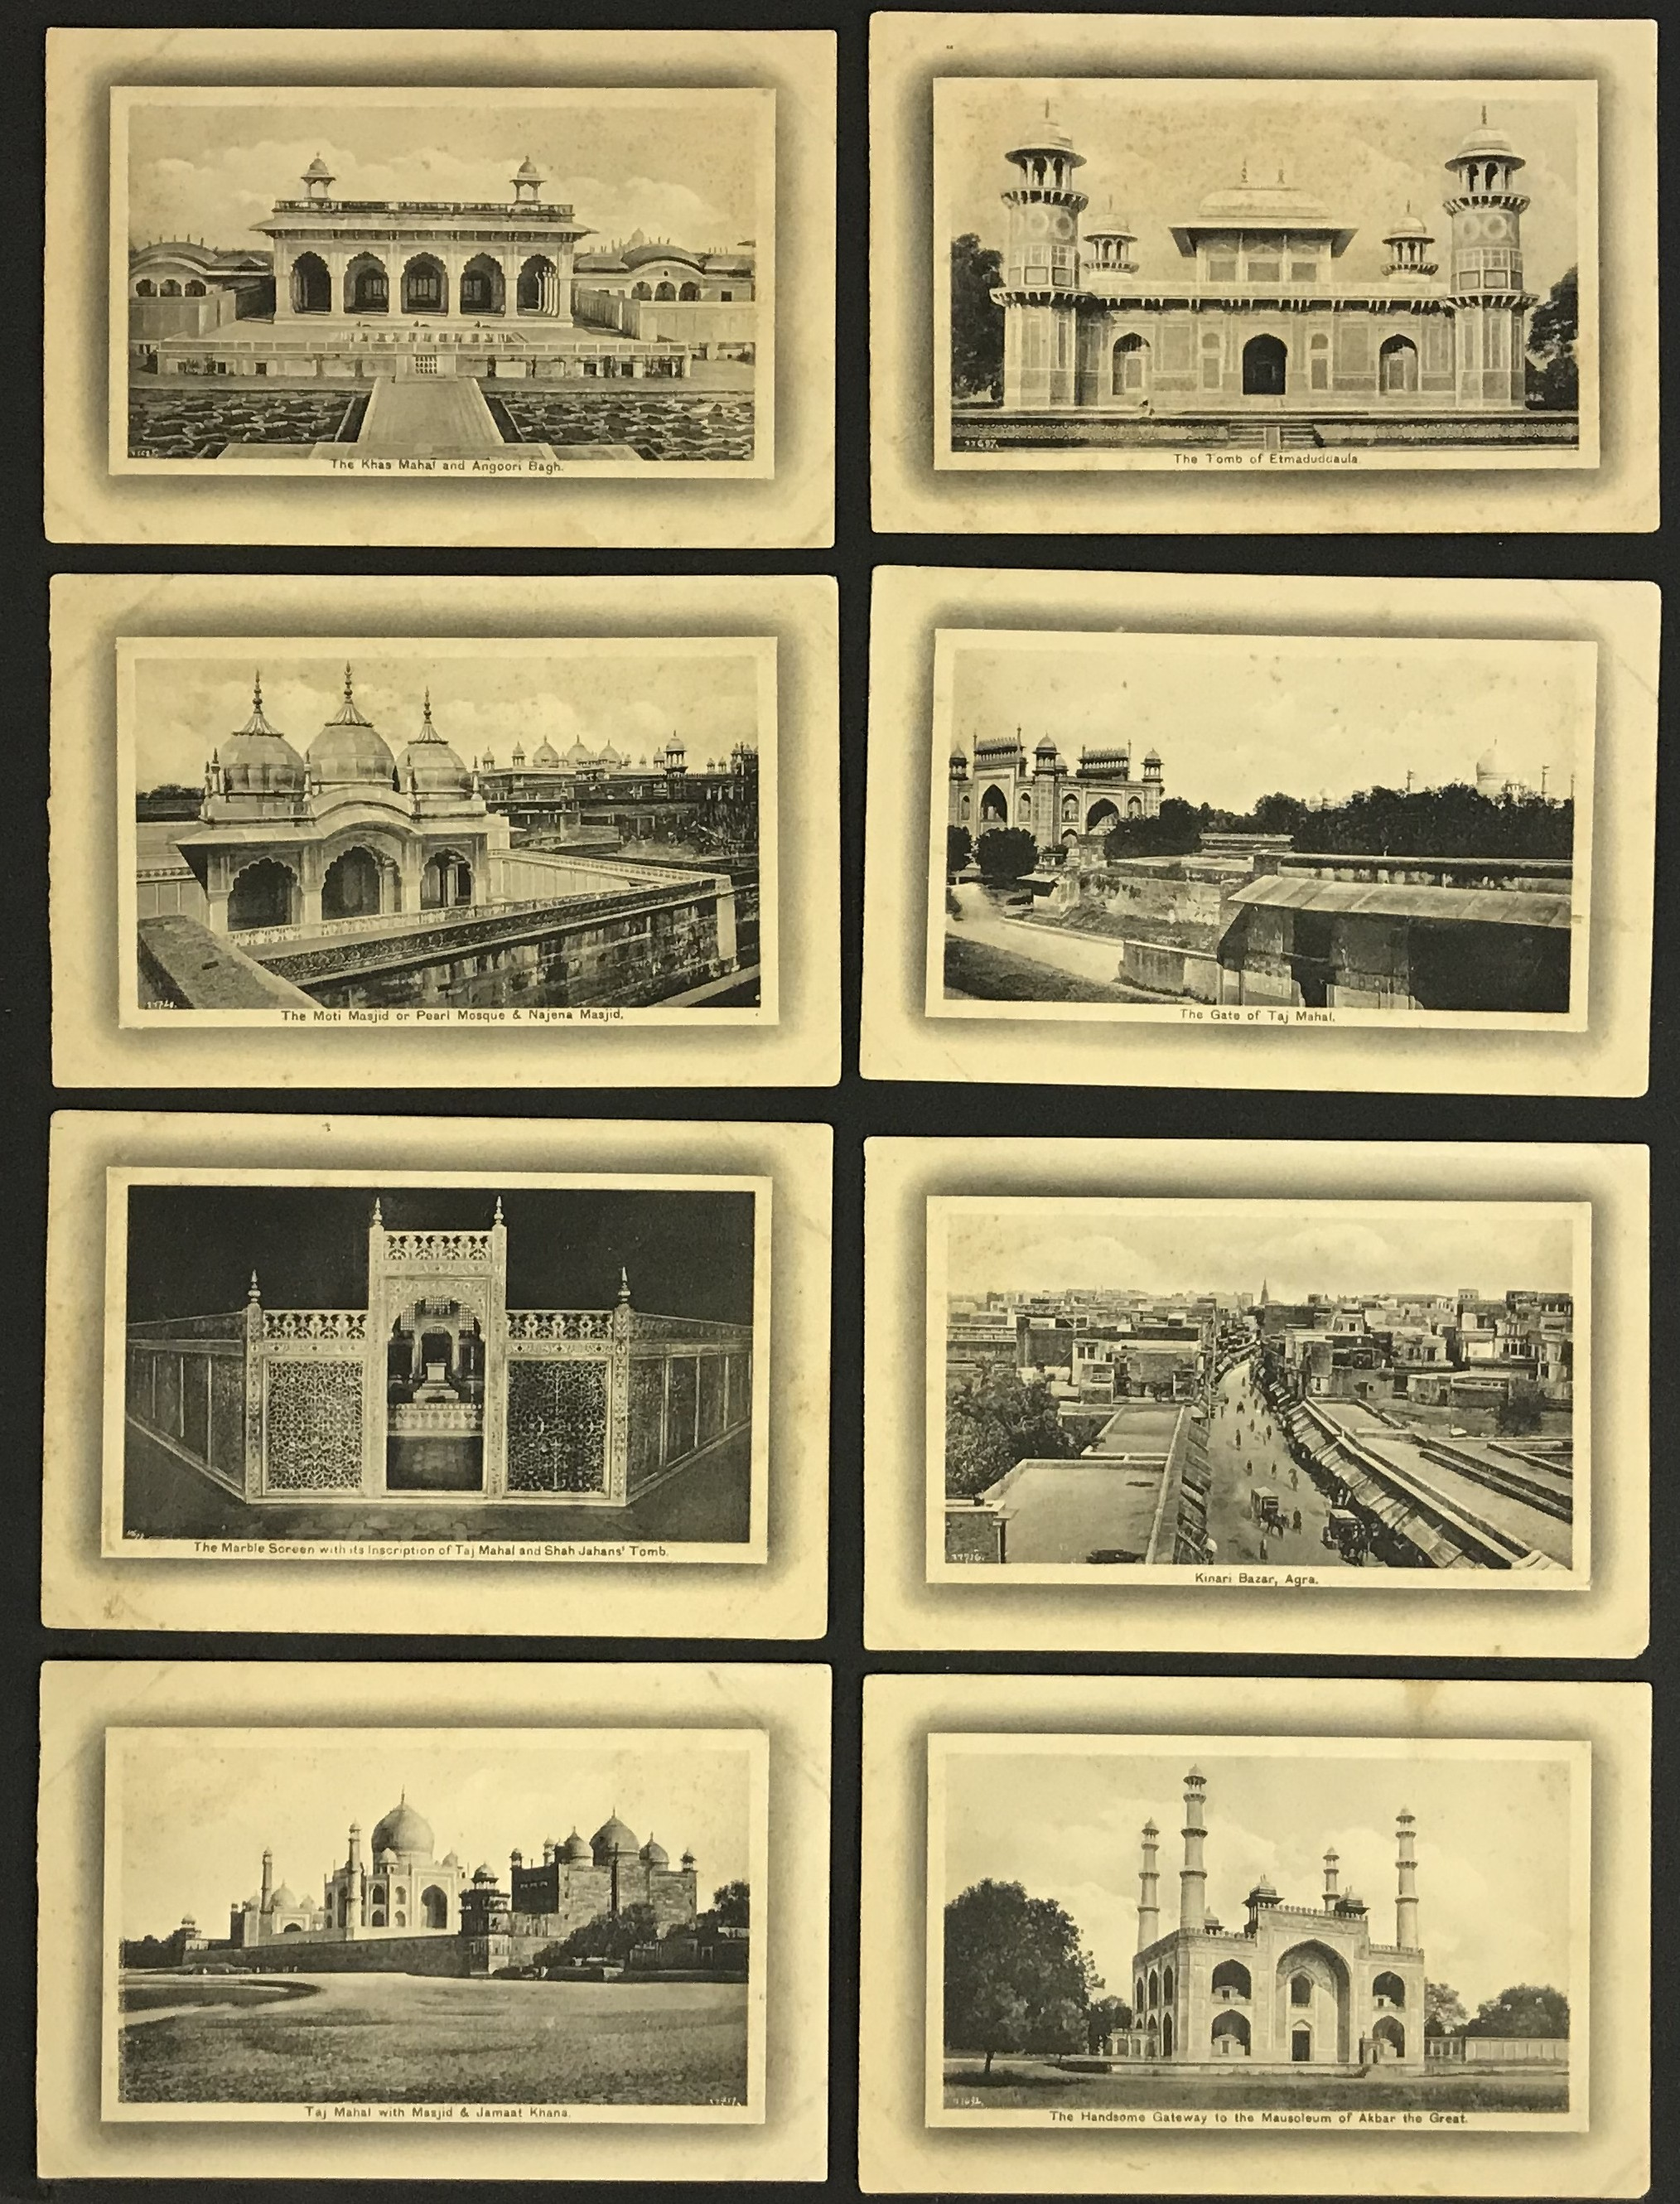 H.A. MIRZA & SONS DELHI - POSTCARDS OF INDIA (20) PRINTED IN SAXONY - Image 4 of 4